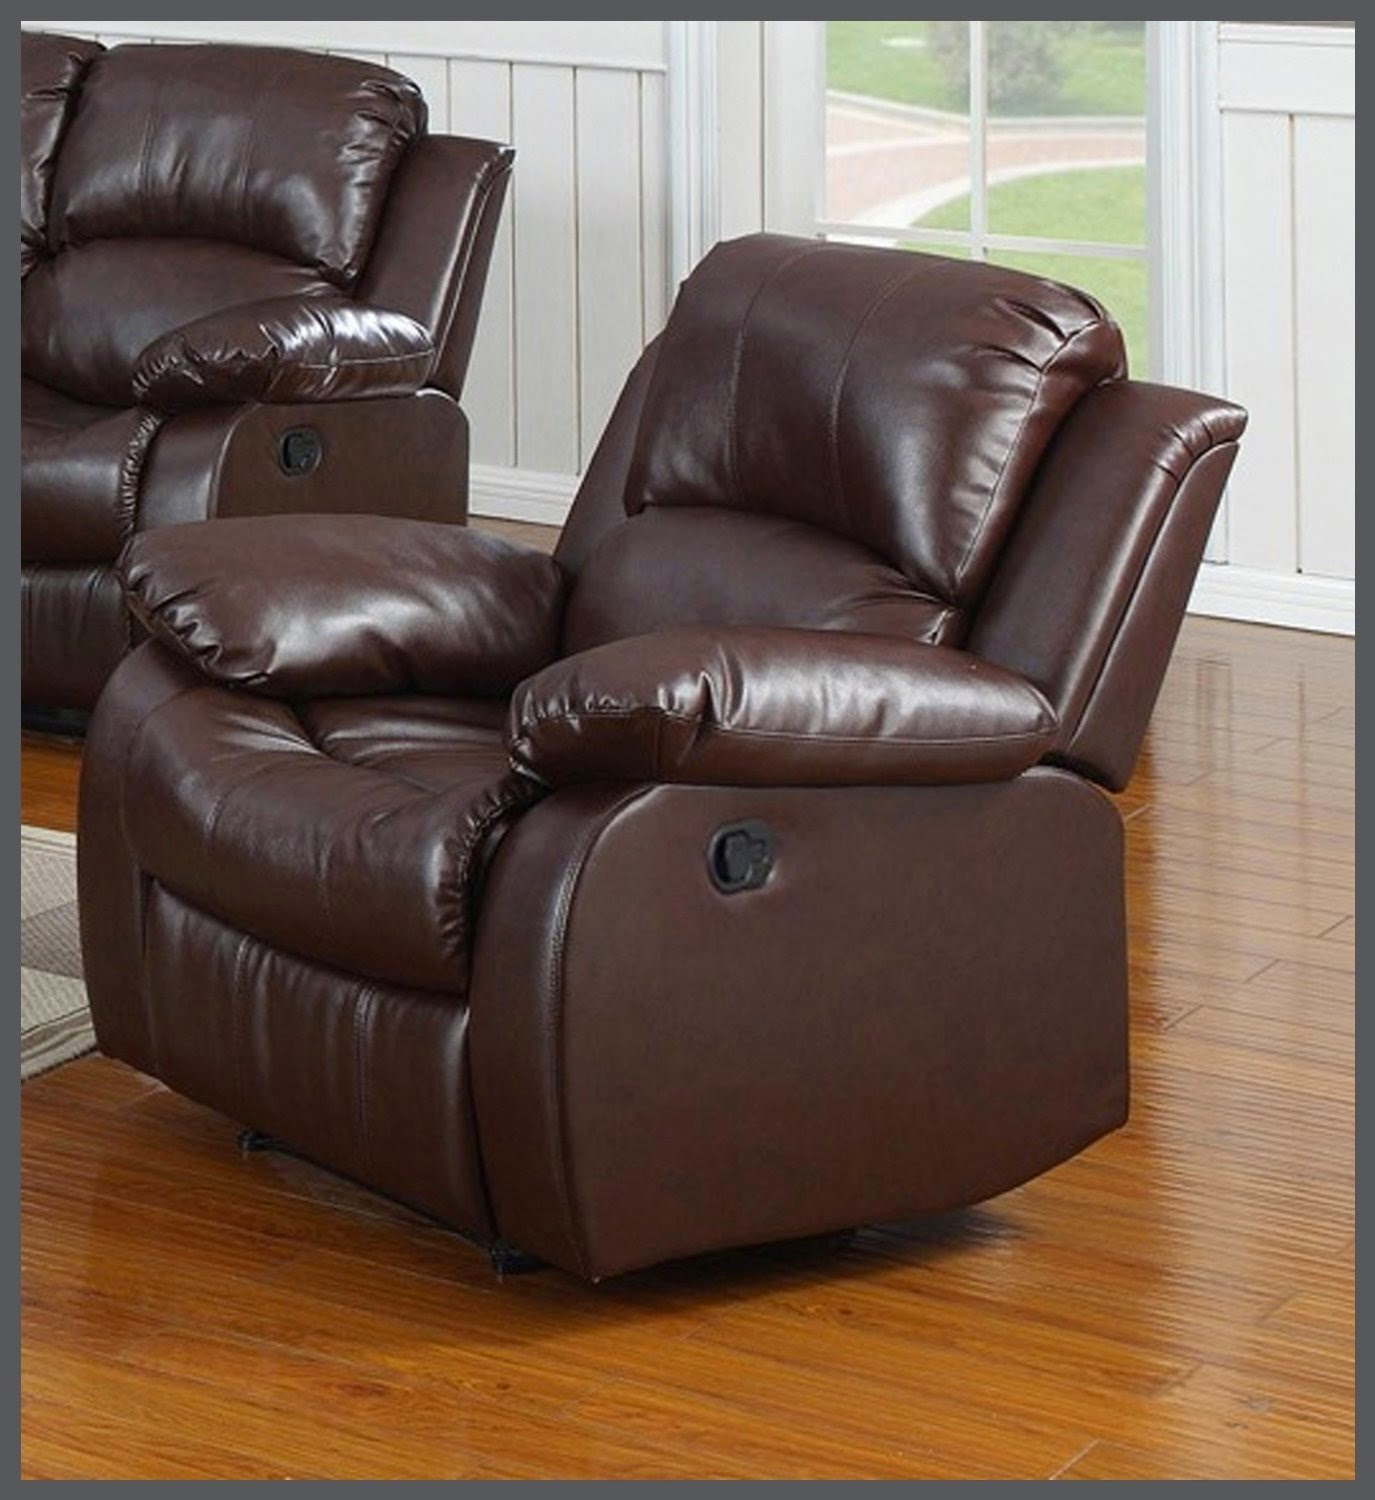 bonded leather sofa and loveseat queen bed safe 60 off huntington 3 pc